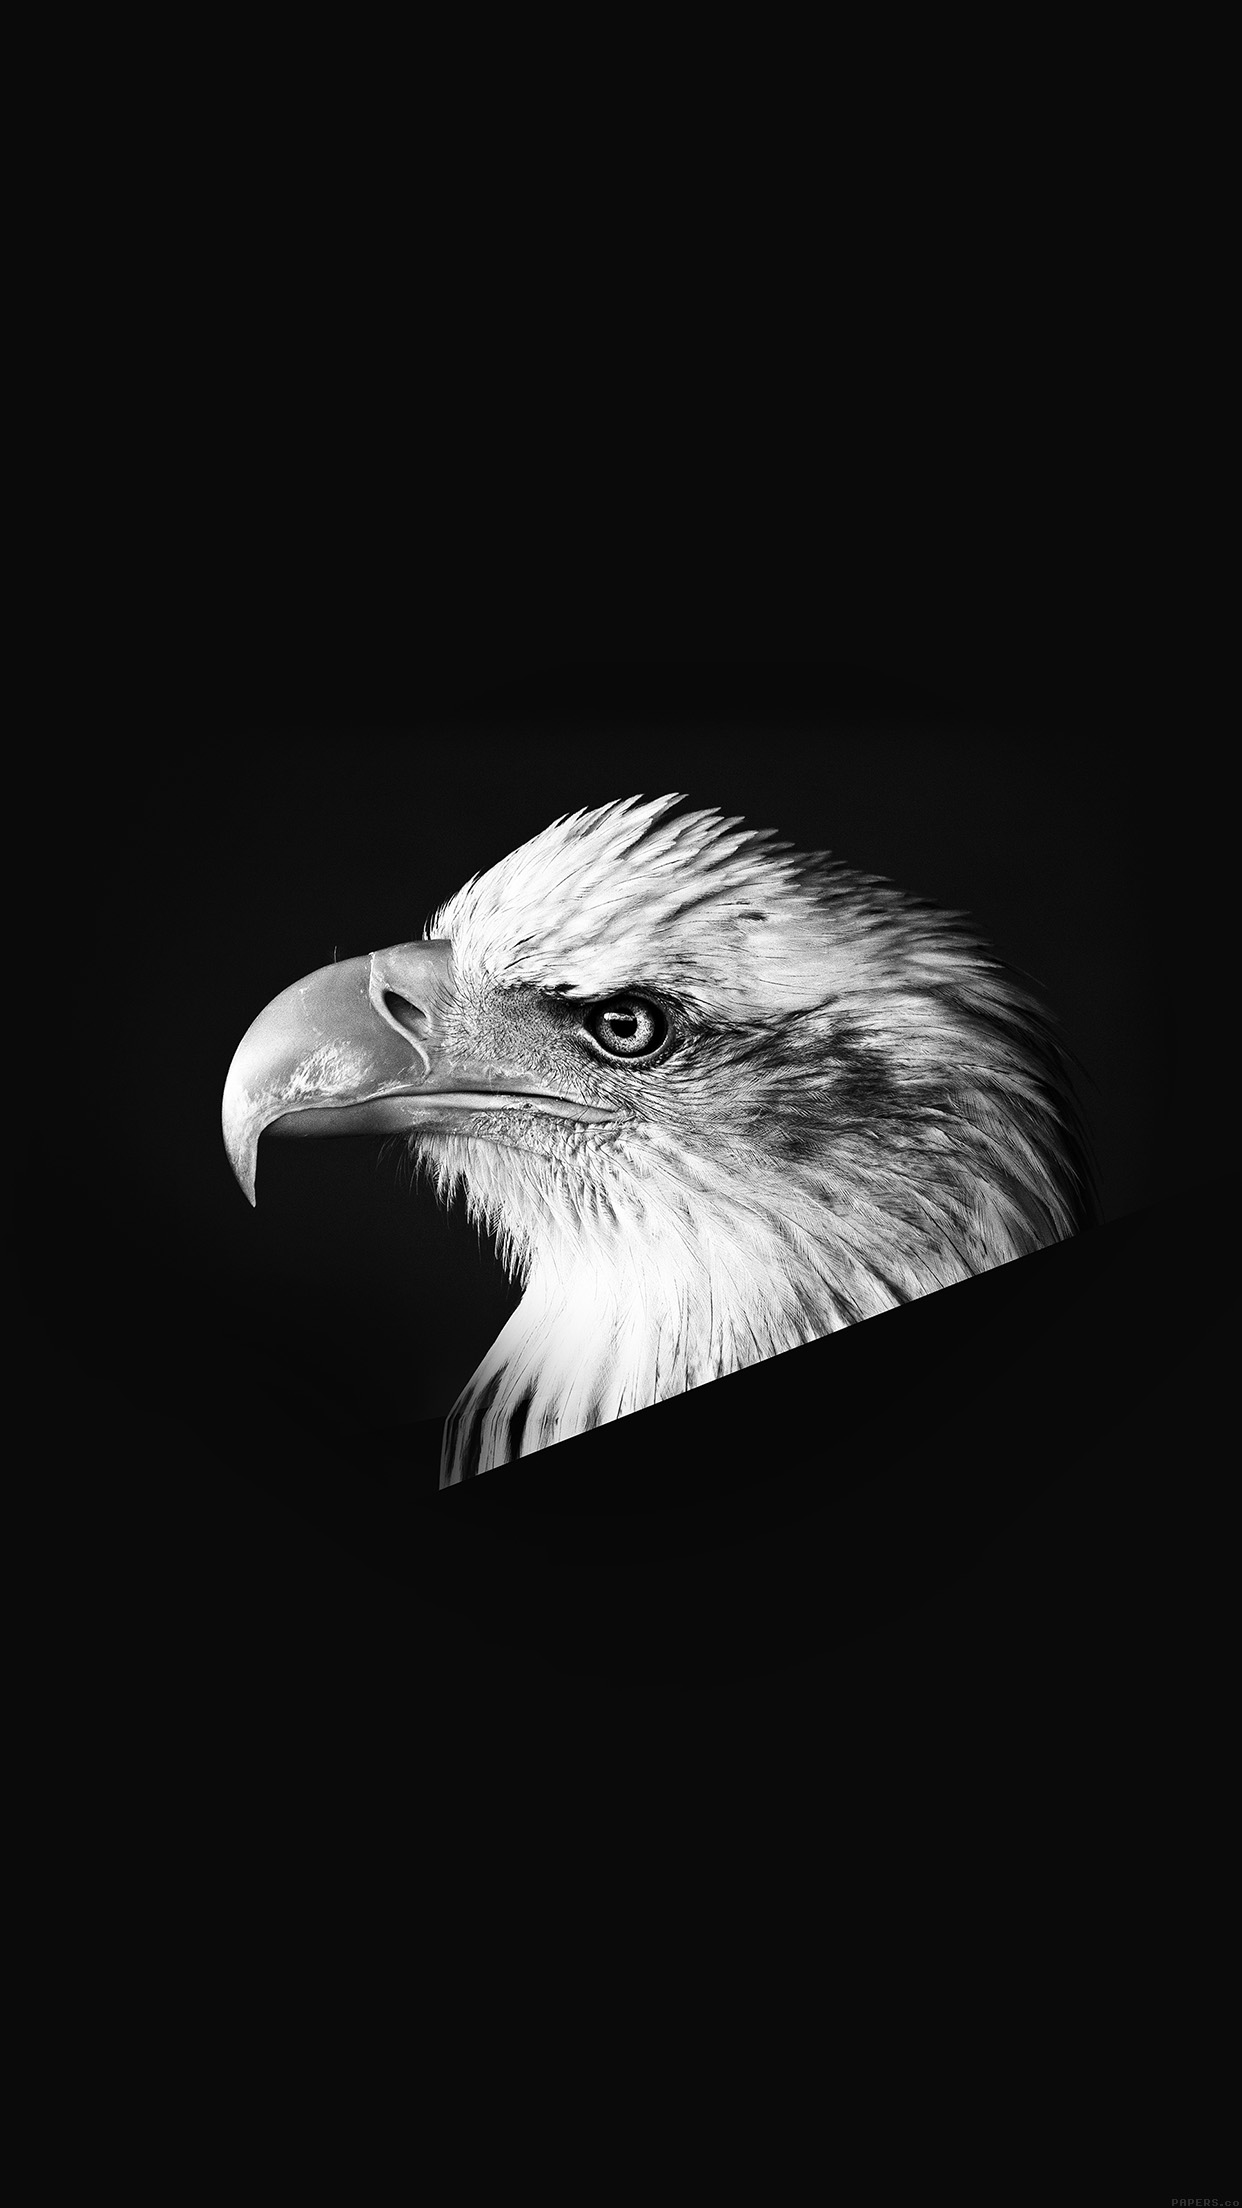 Eagle Dark Animal Bird Face Bw Android wallpaper